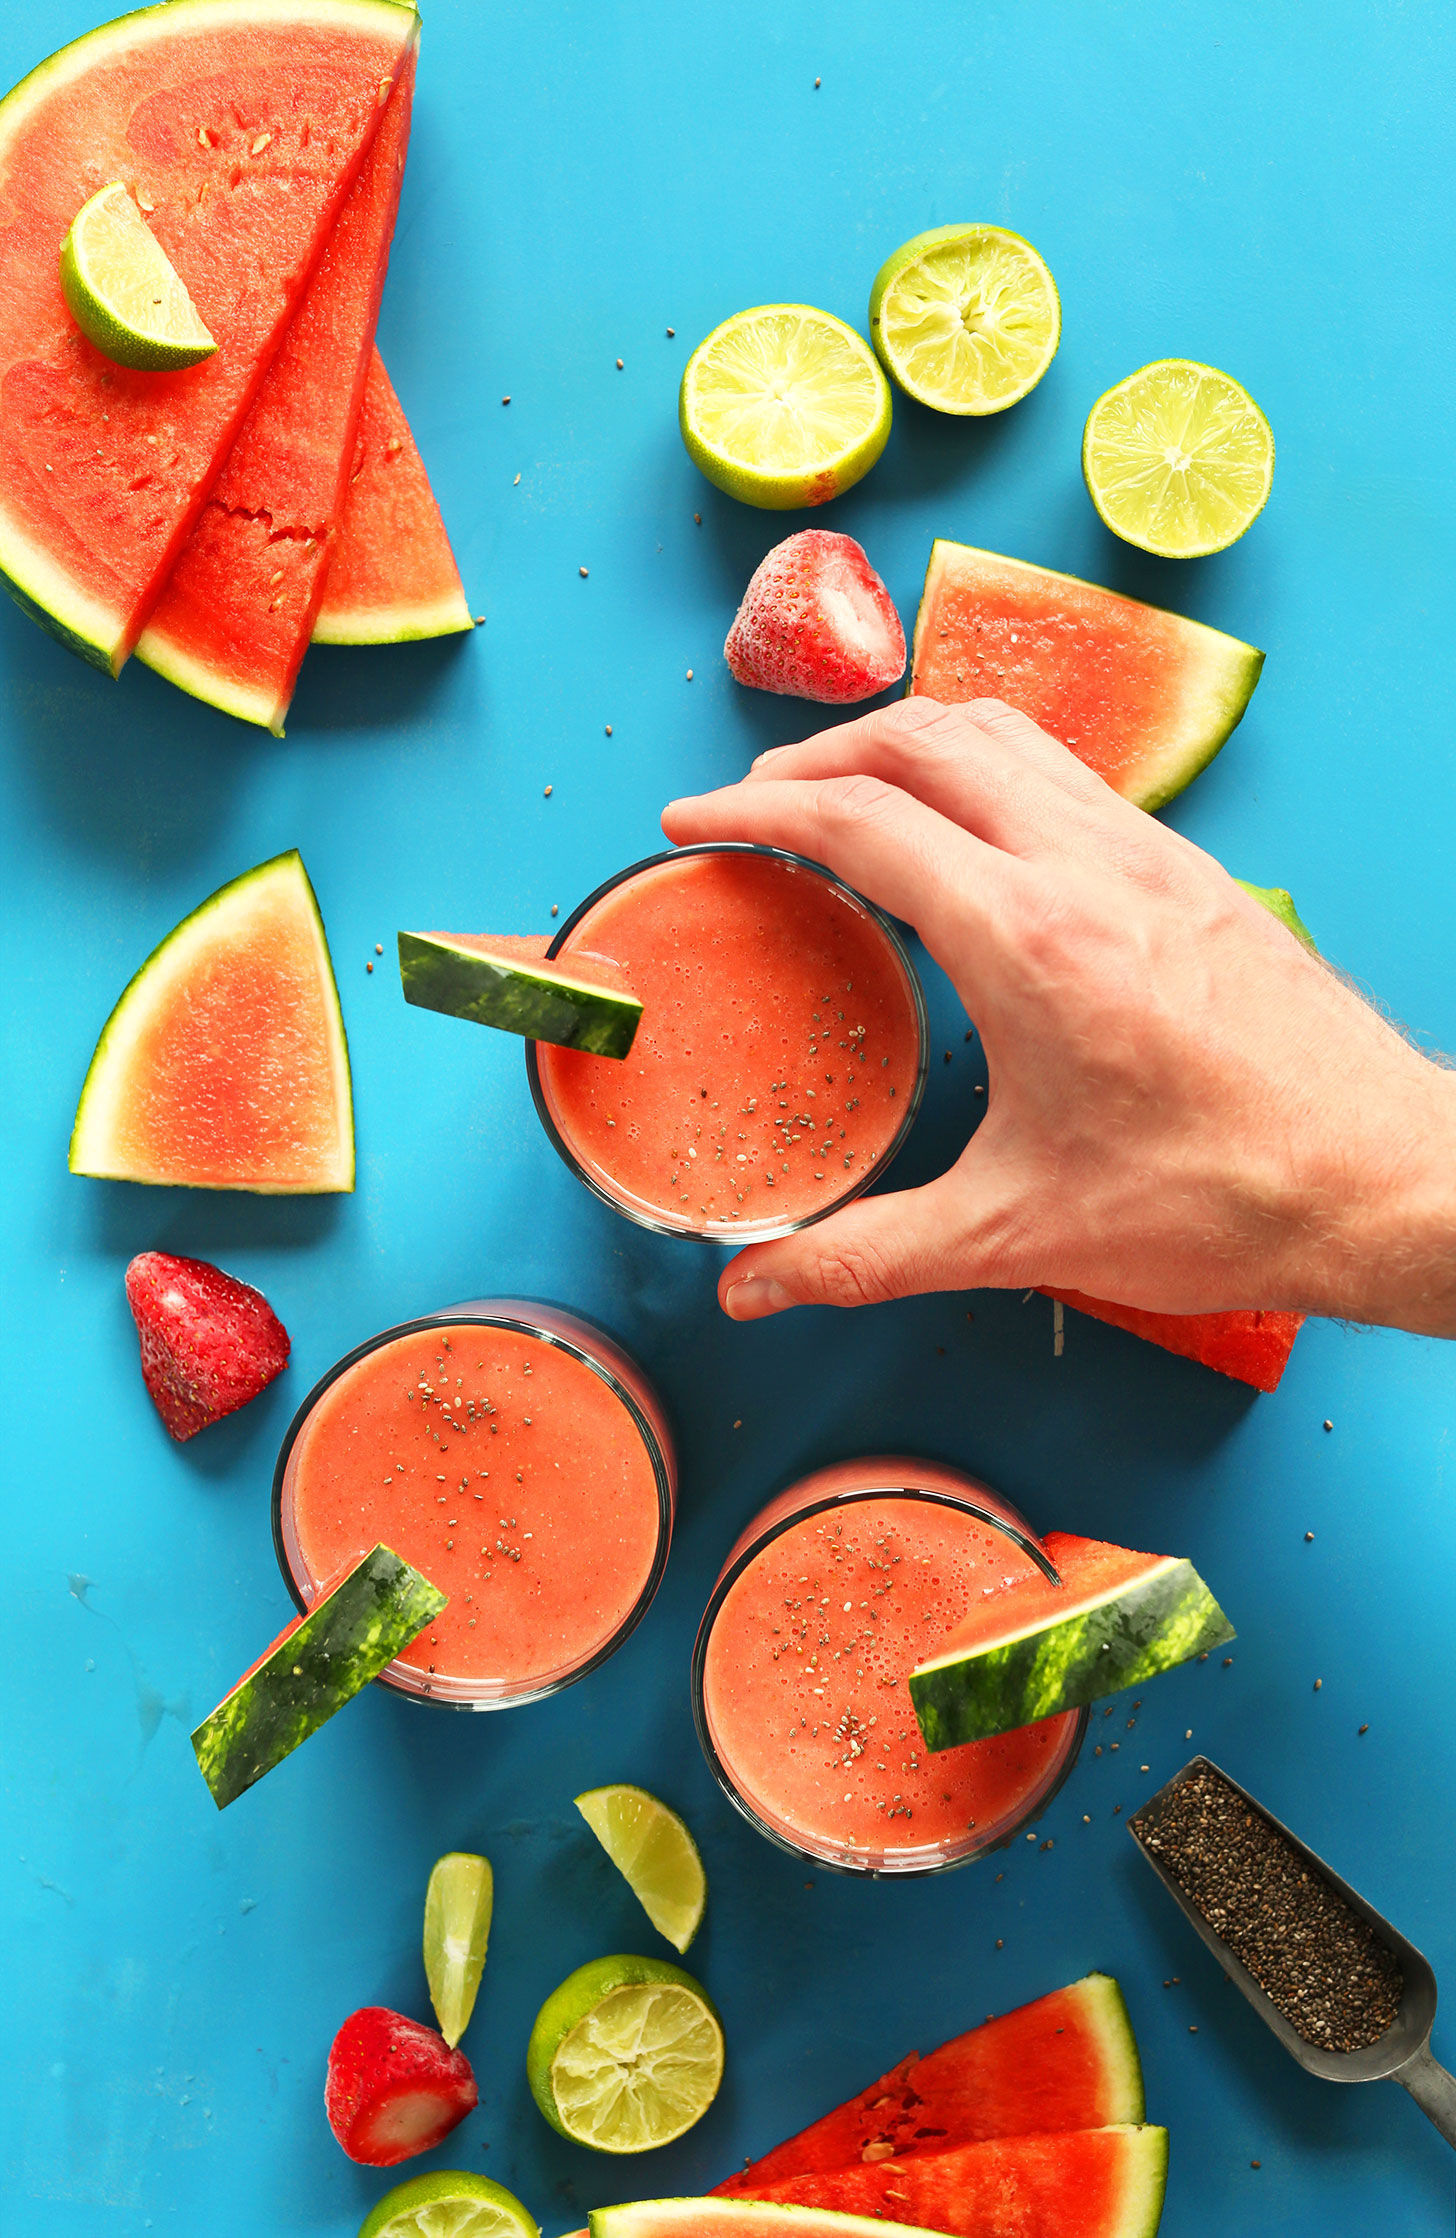 Grabbing a glass of our Refreshing Watermelon Smoothie with Strawberries, Lime, and Chia Seeds